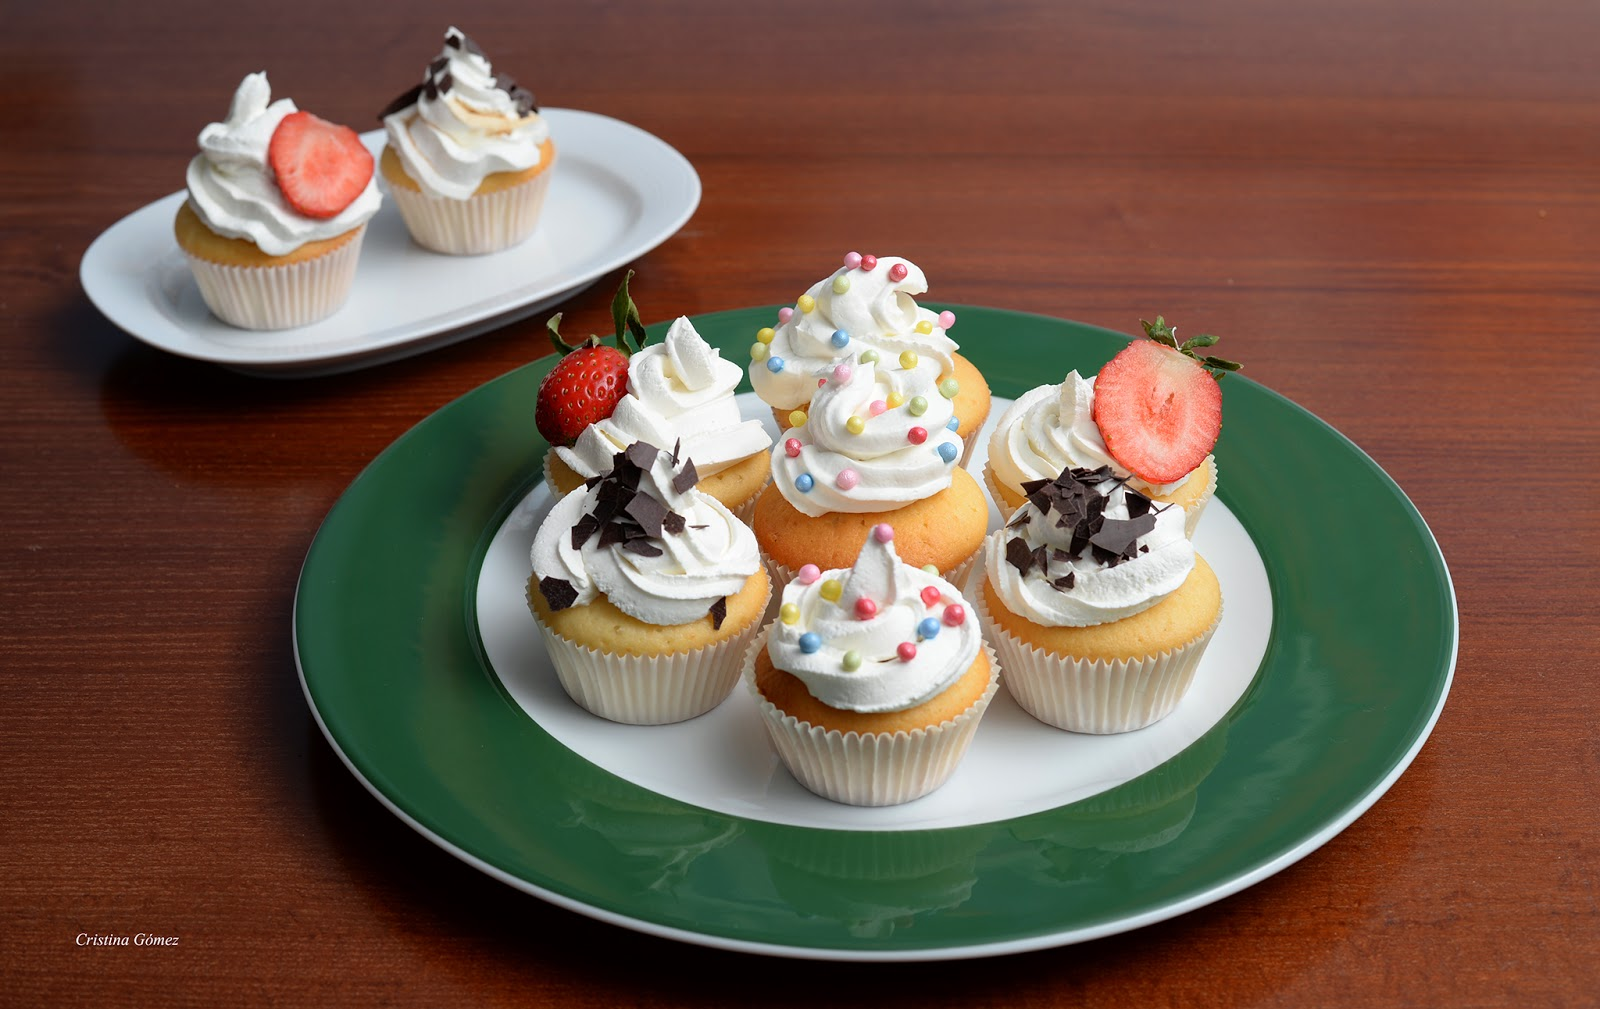 Mondays We Cook: My First Cupcakes